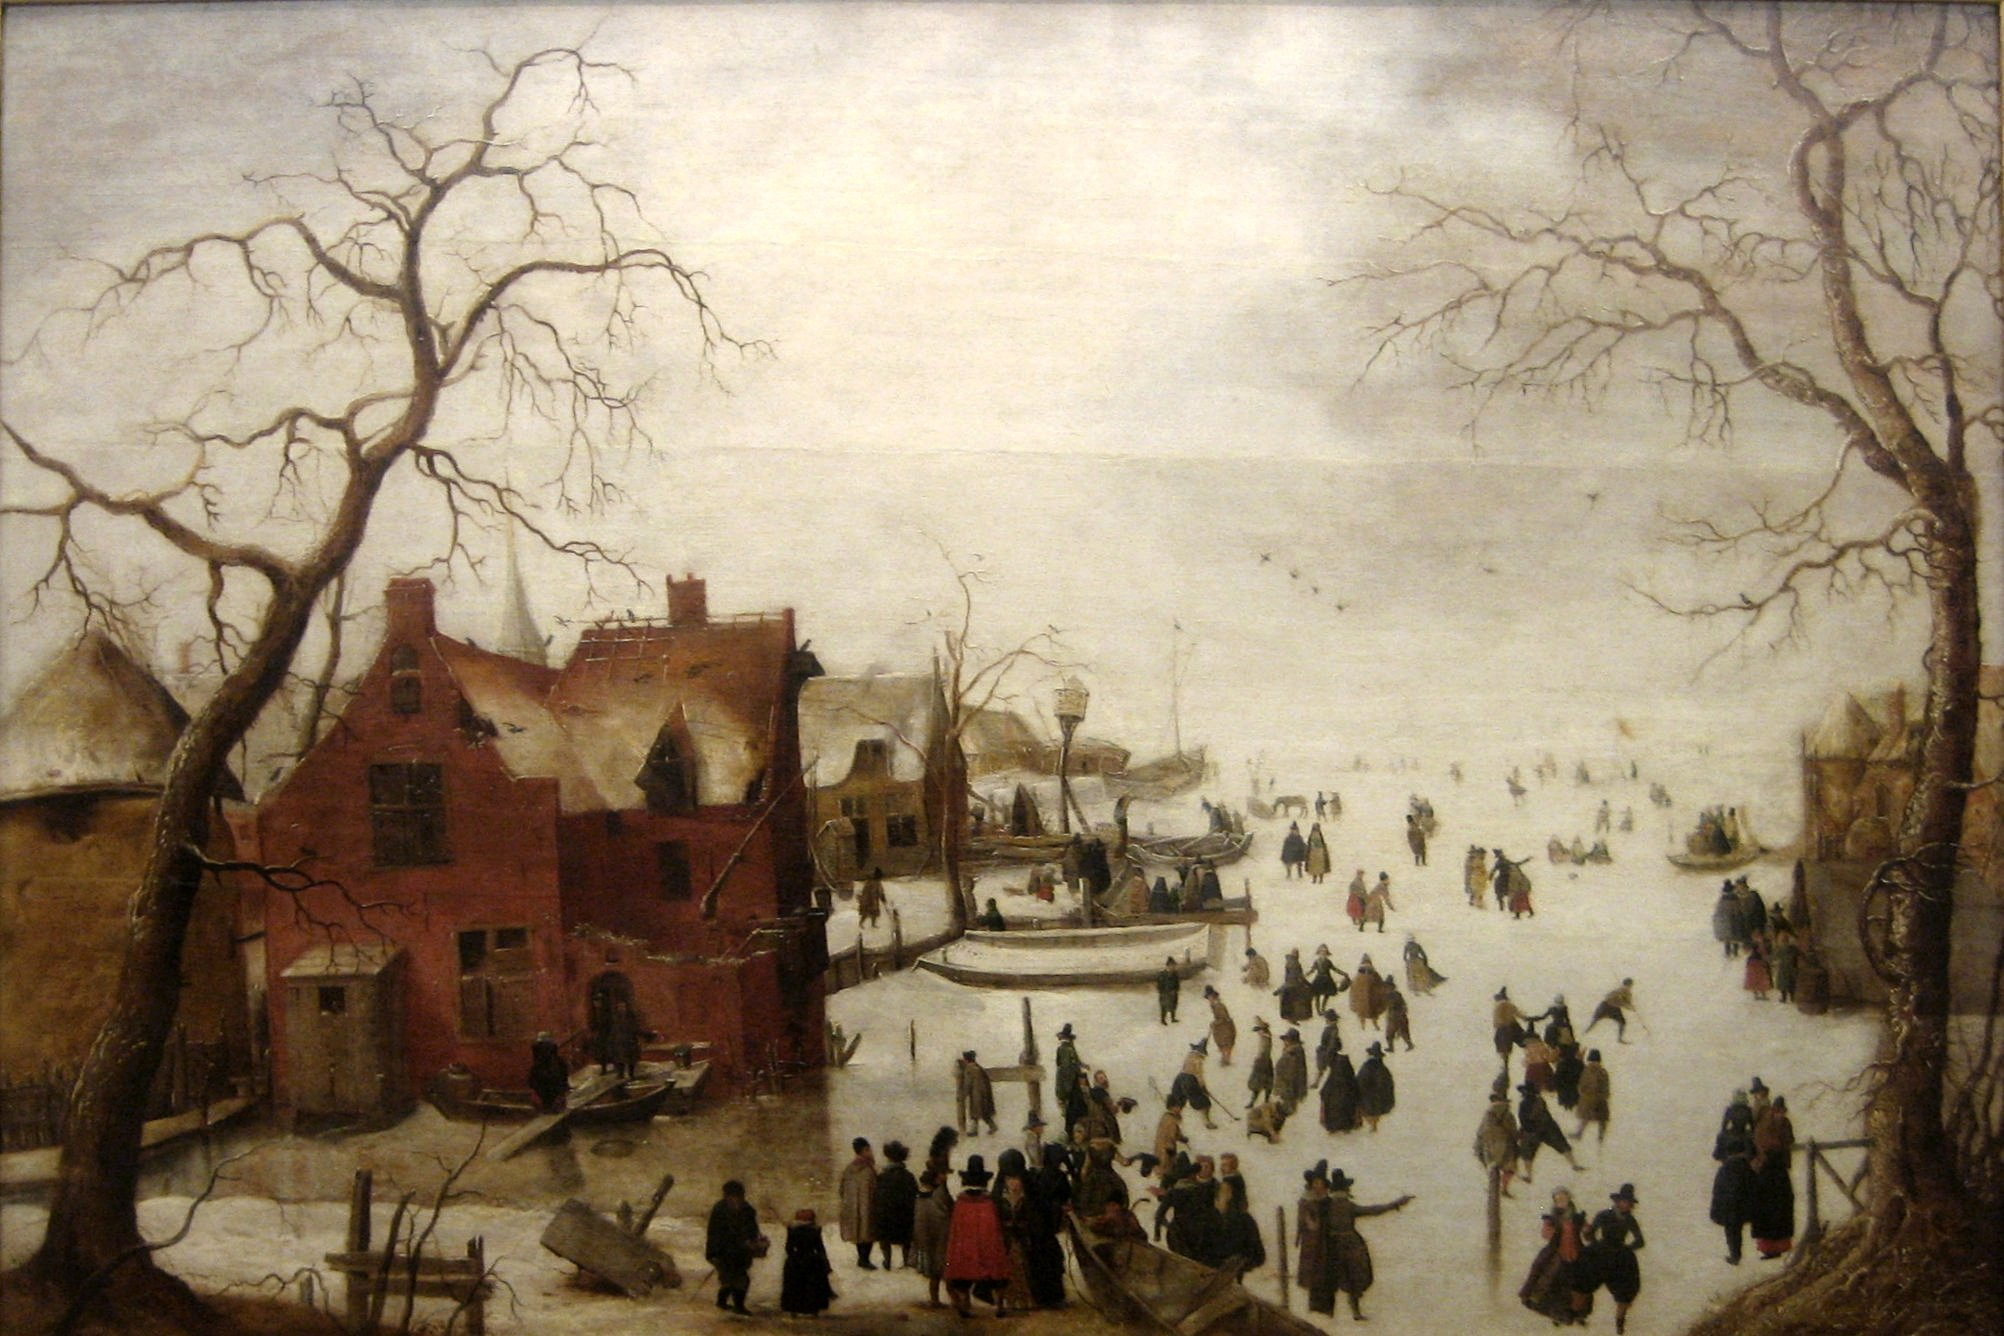 Hendrick Avercamp, Winter Scene, 1620